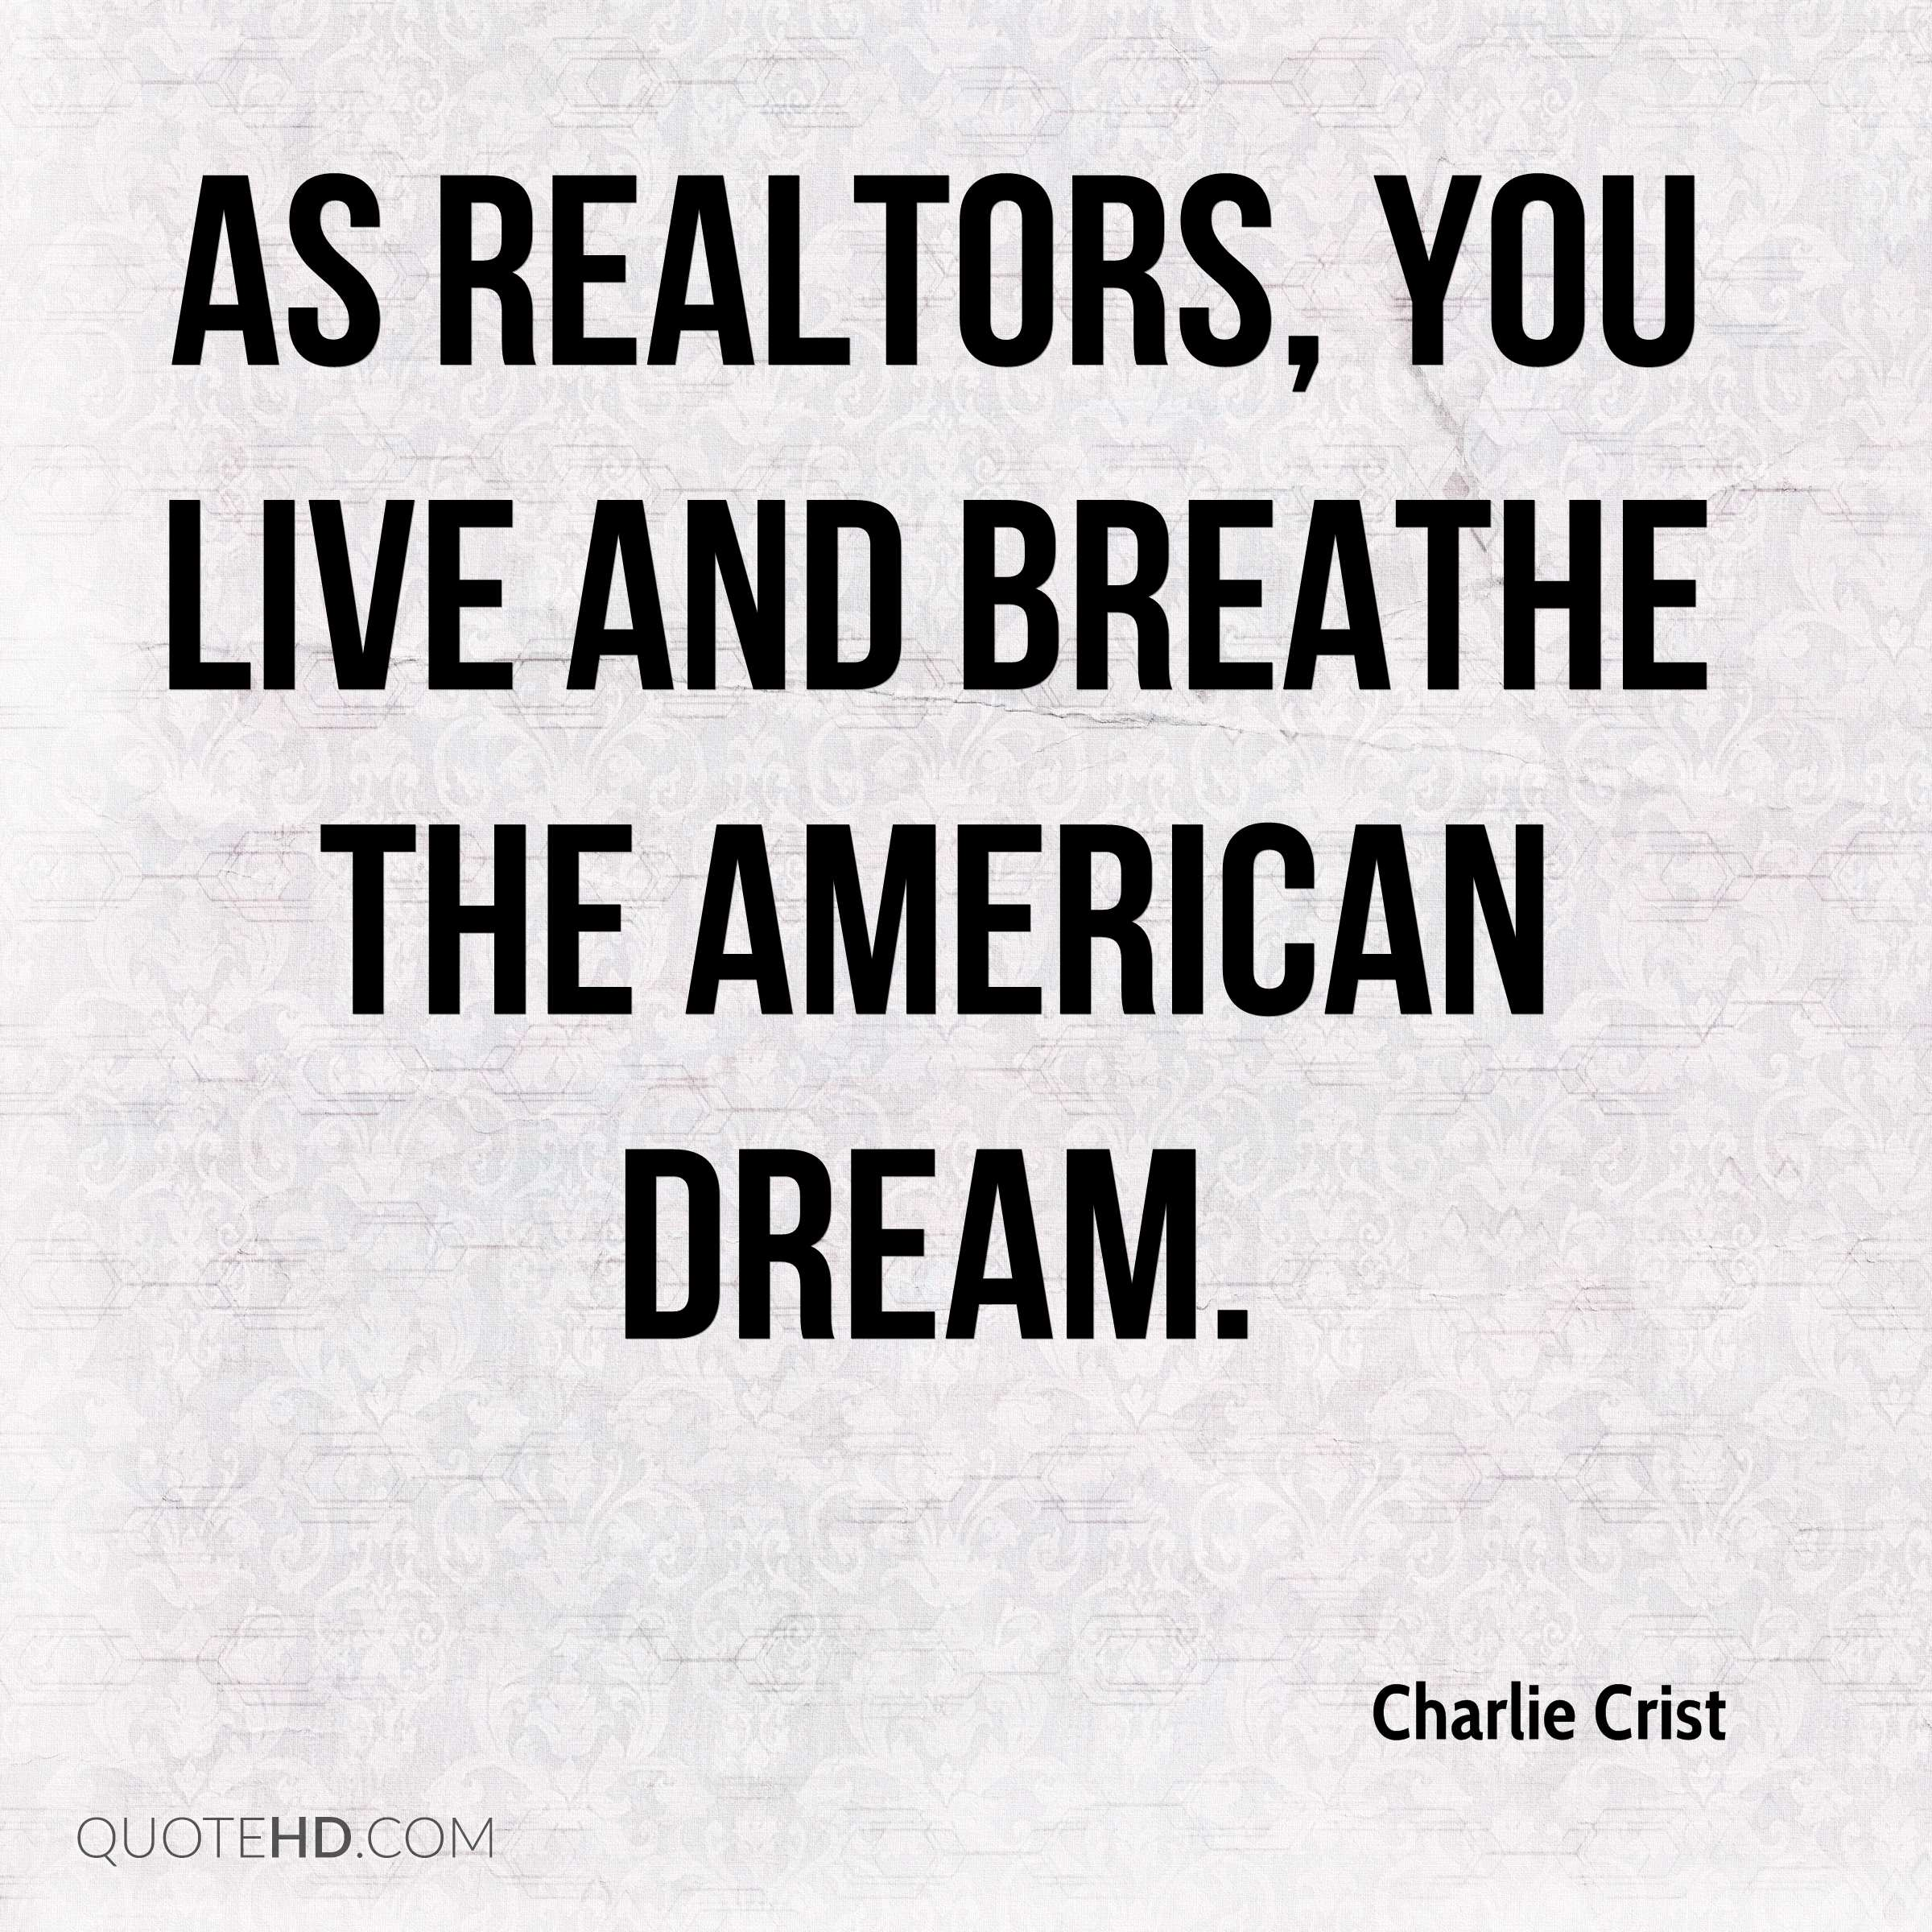 As Realtors, you live and breathe the American dream.